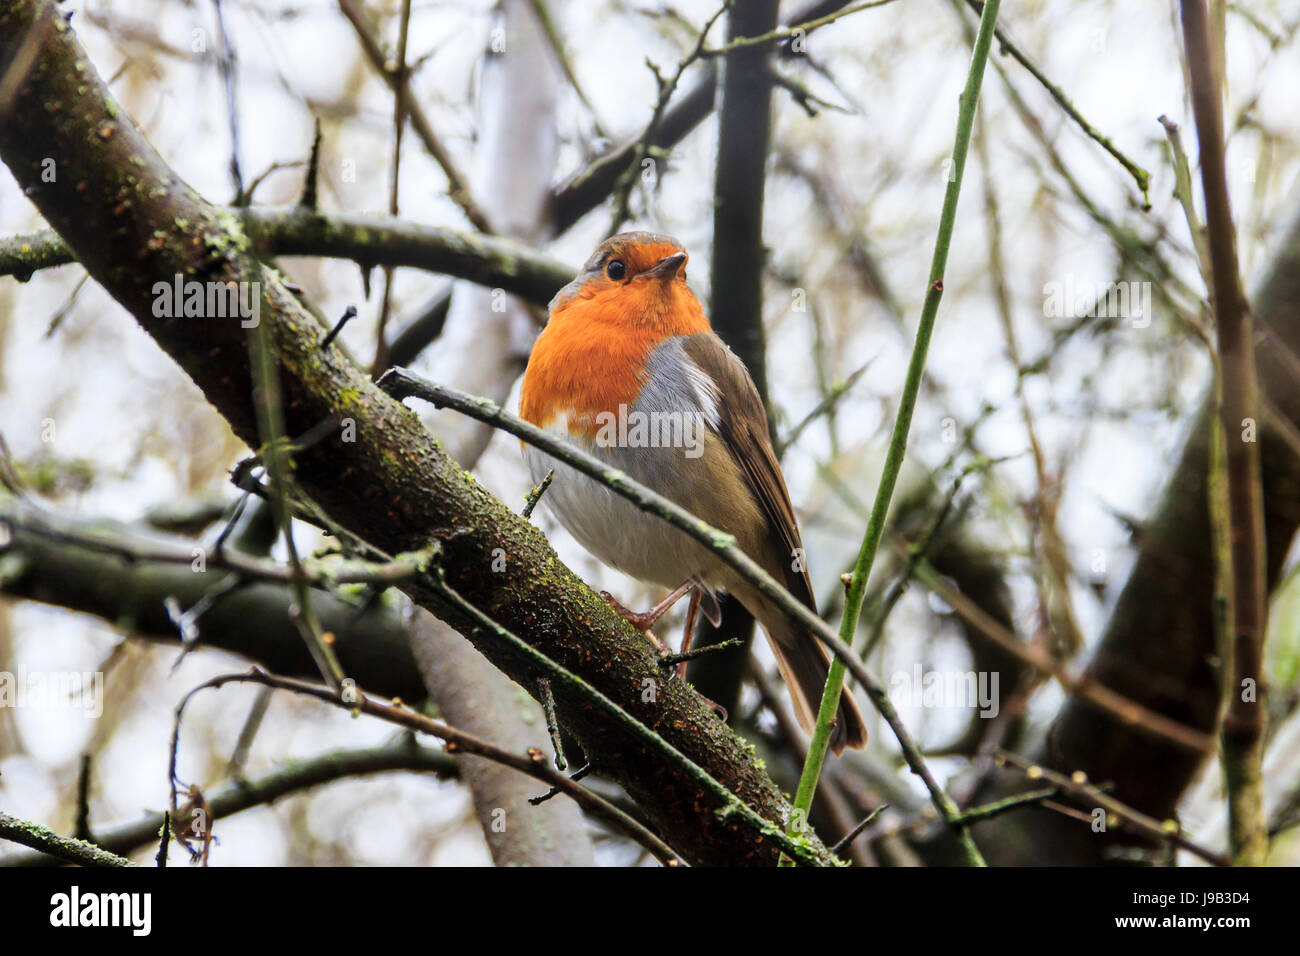 A robin redbreast (Erithacus Rubecula) perched on a branch in a woodland Stock Photo